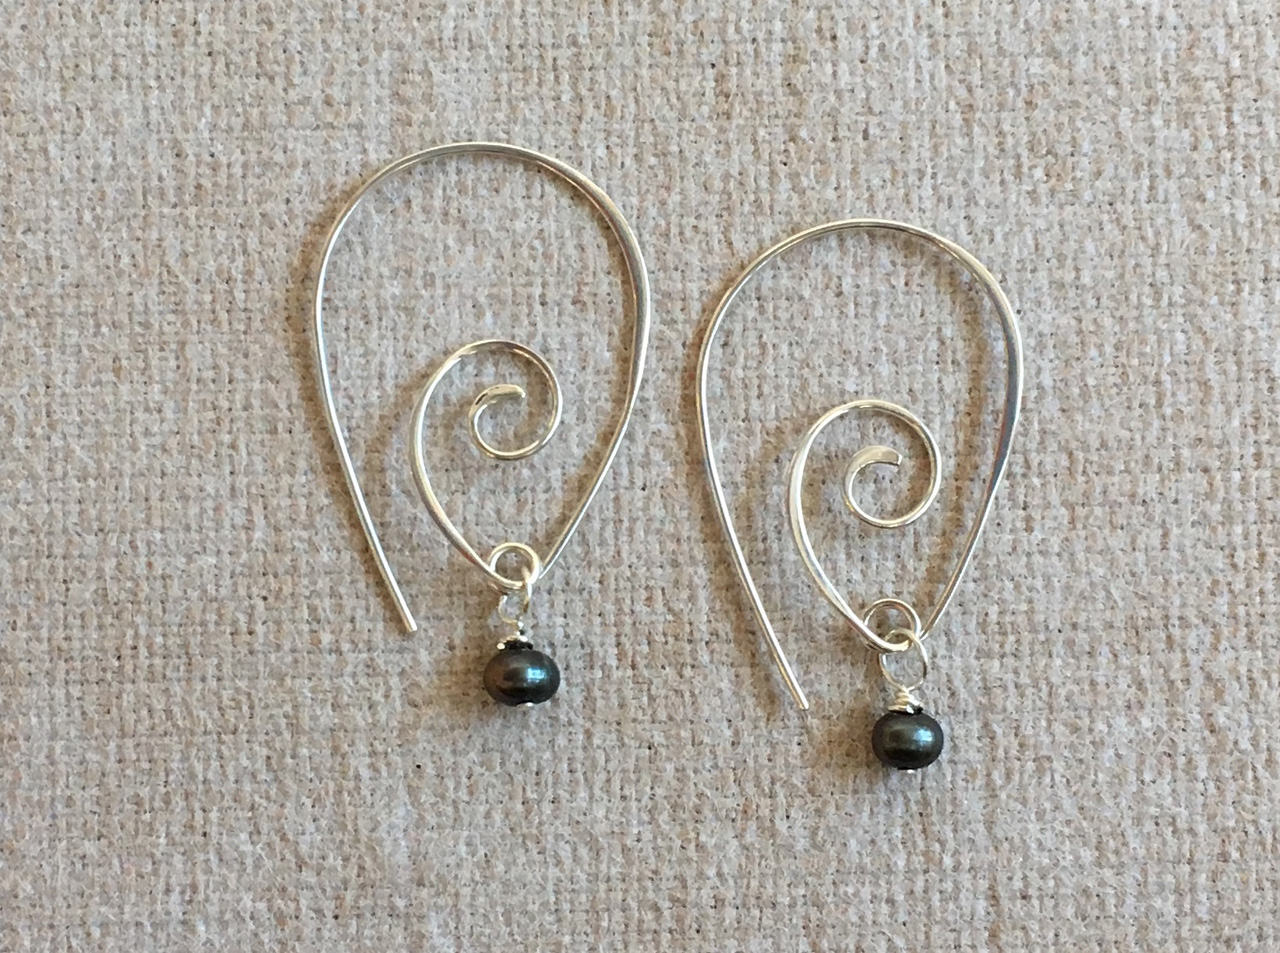 Silver Pointy Spiral Earring With Black Freshwater Pearl by Christi Cafferata